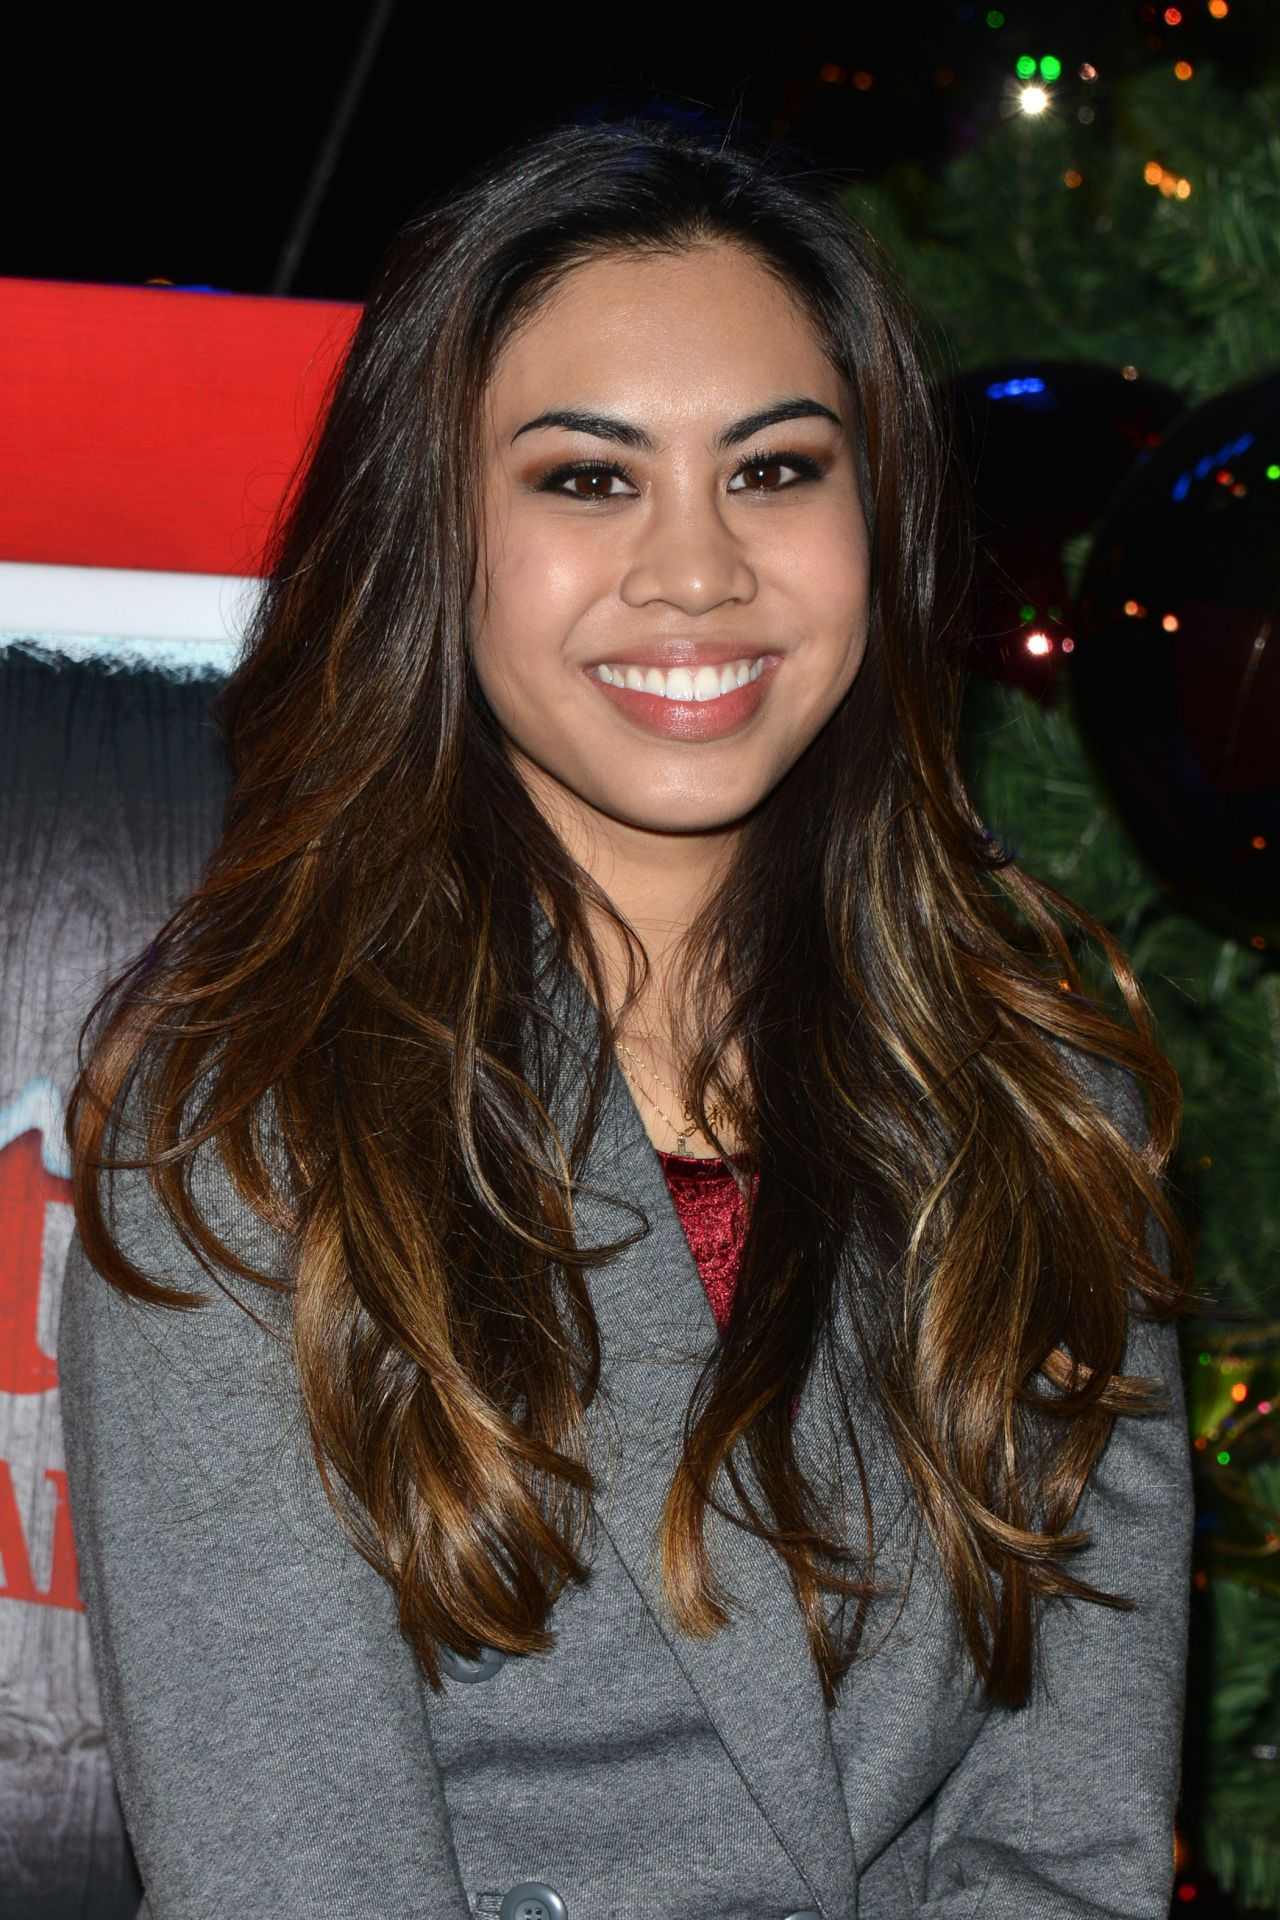 Ashley Argota - Knotts Merry Farm Holiday Tree Lighting In Buena Park - November 2014-7015